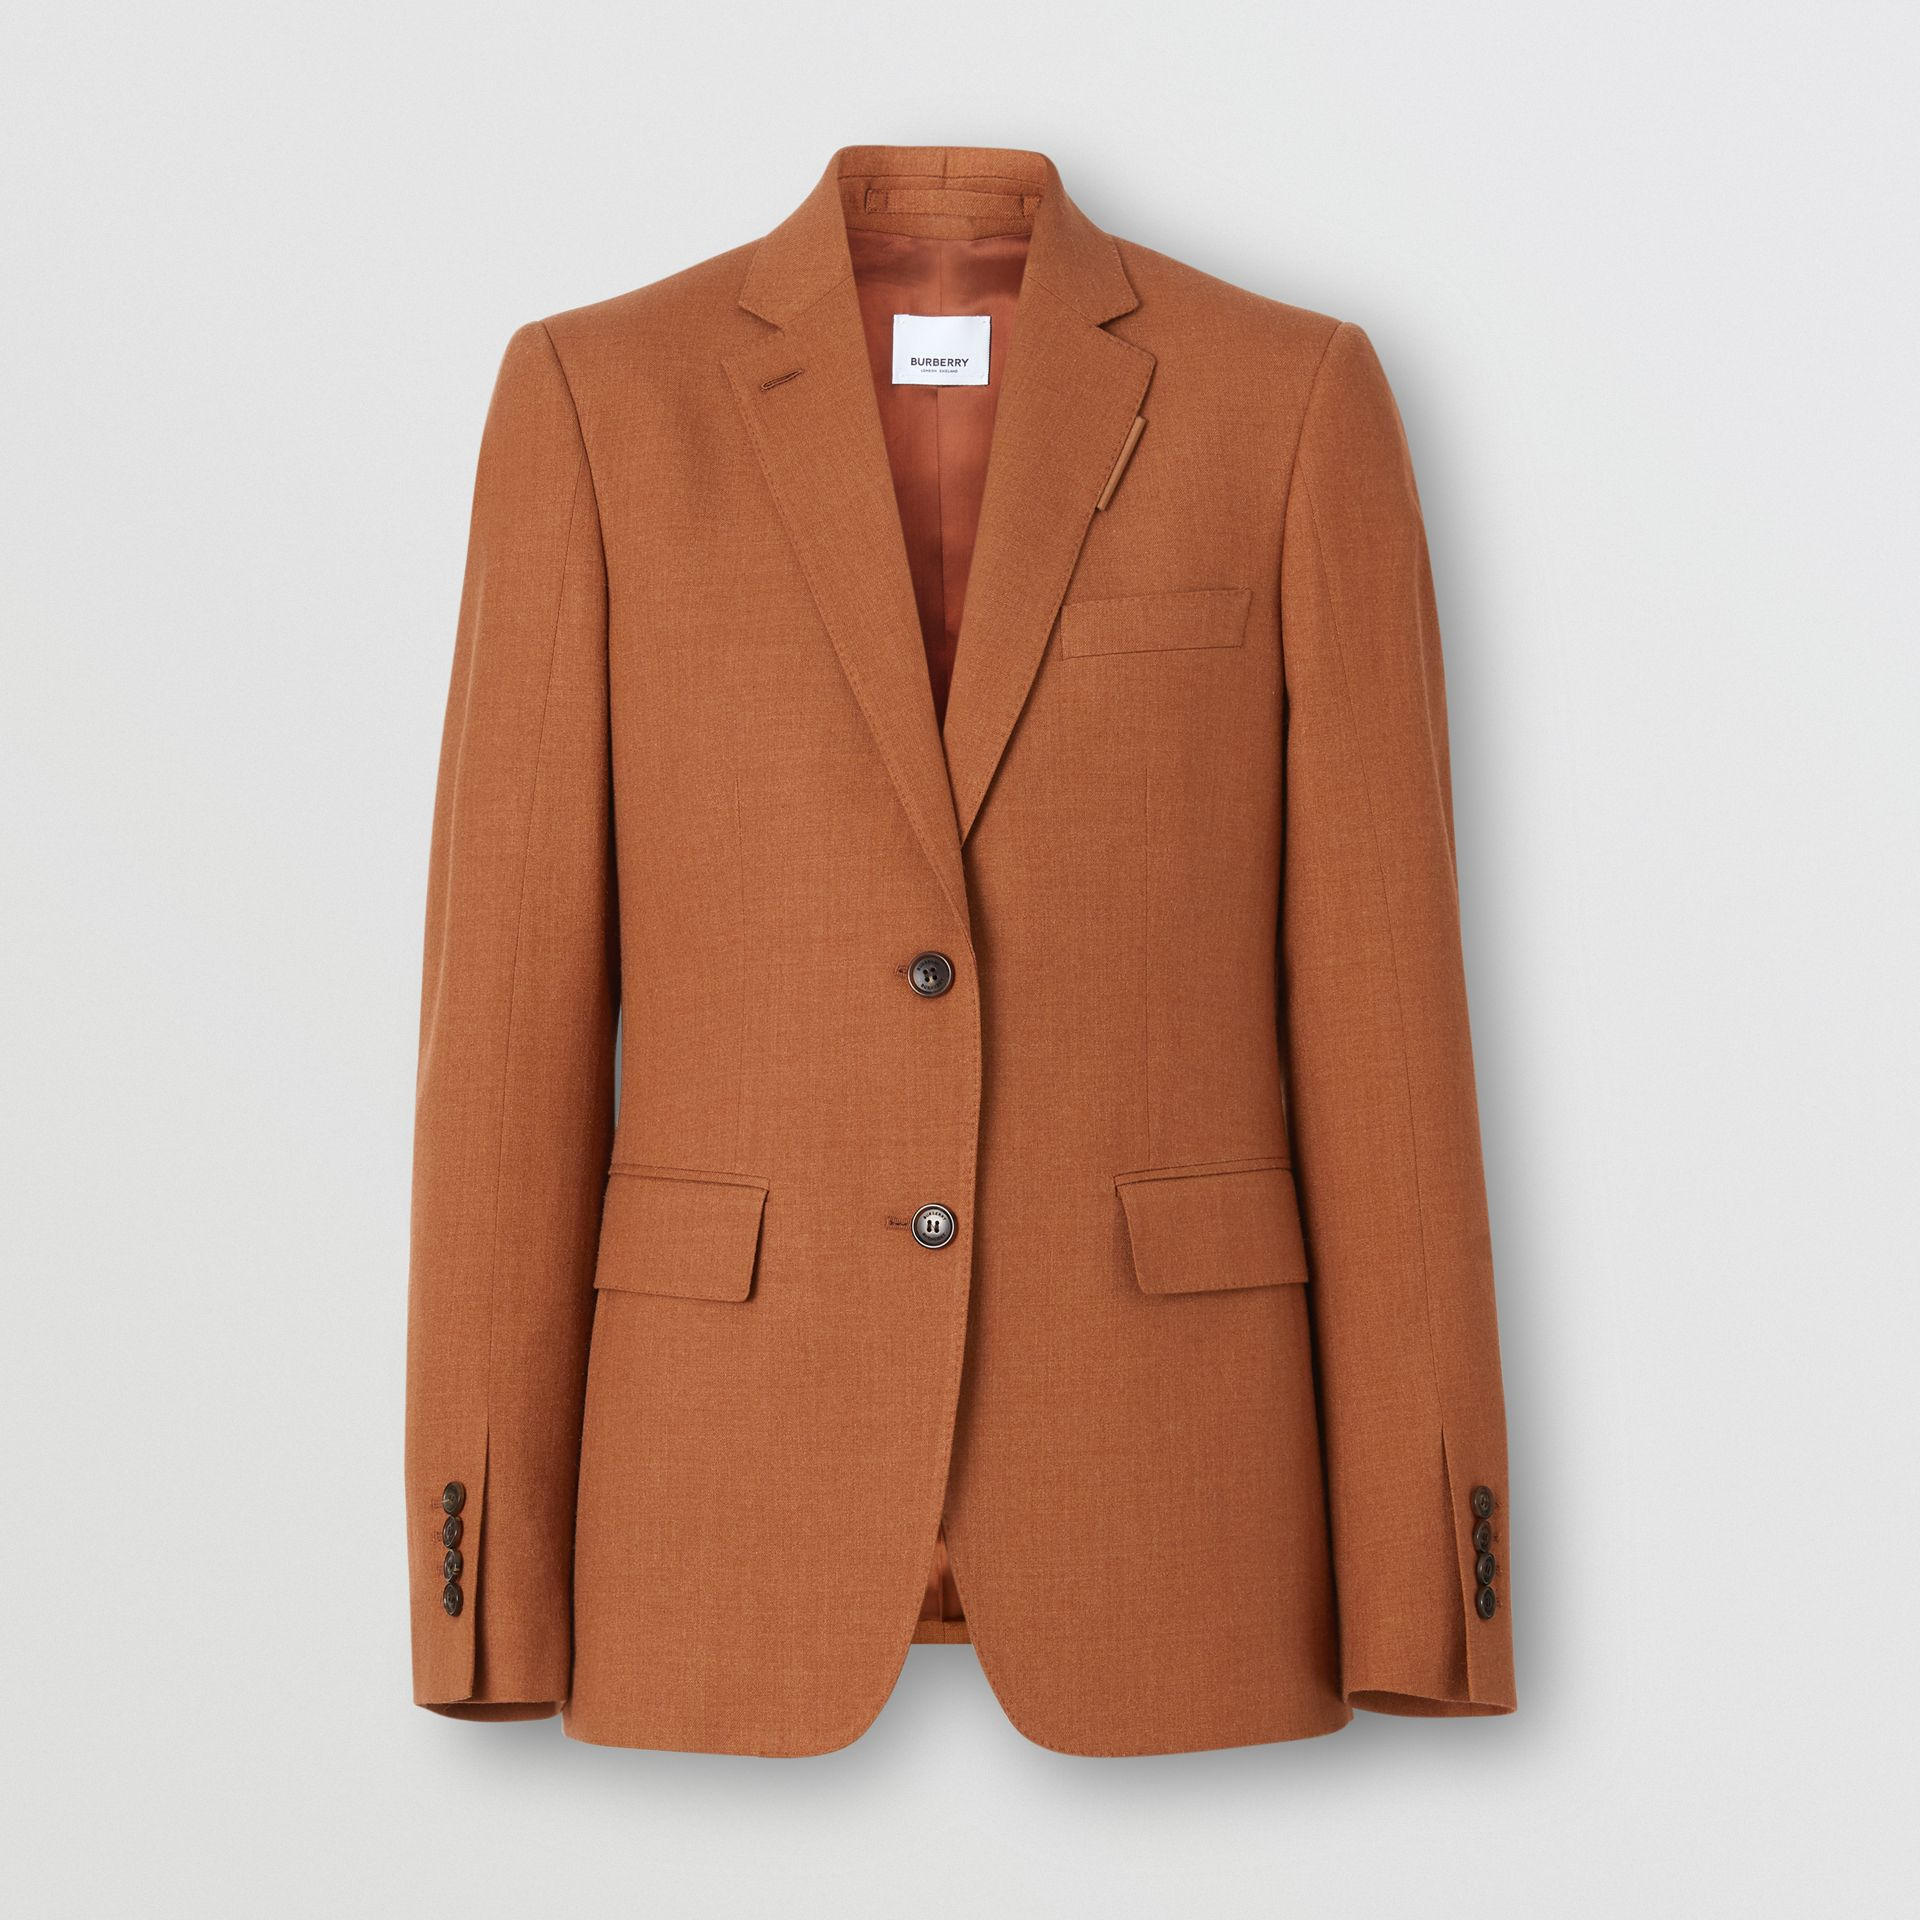 Wool, Silk and Cotton Blazer in Rust - Women | Burberry - gallery image 3